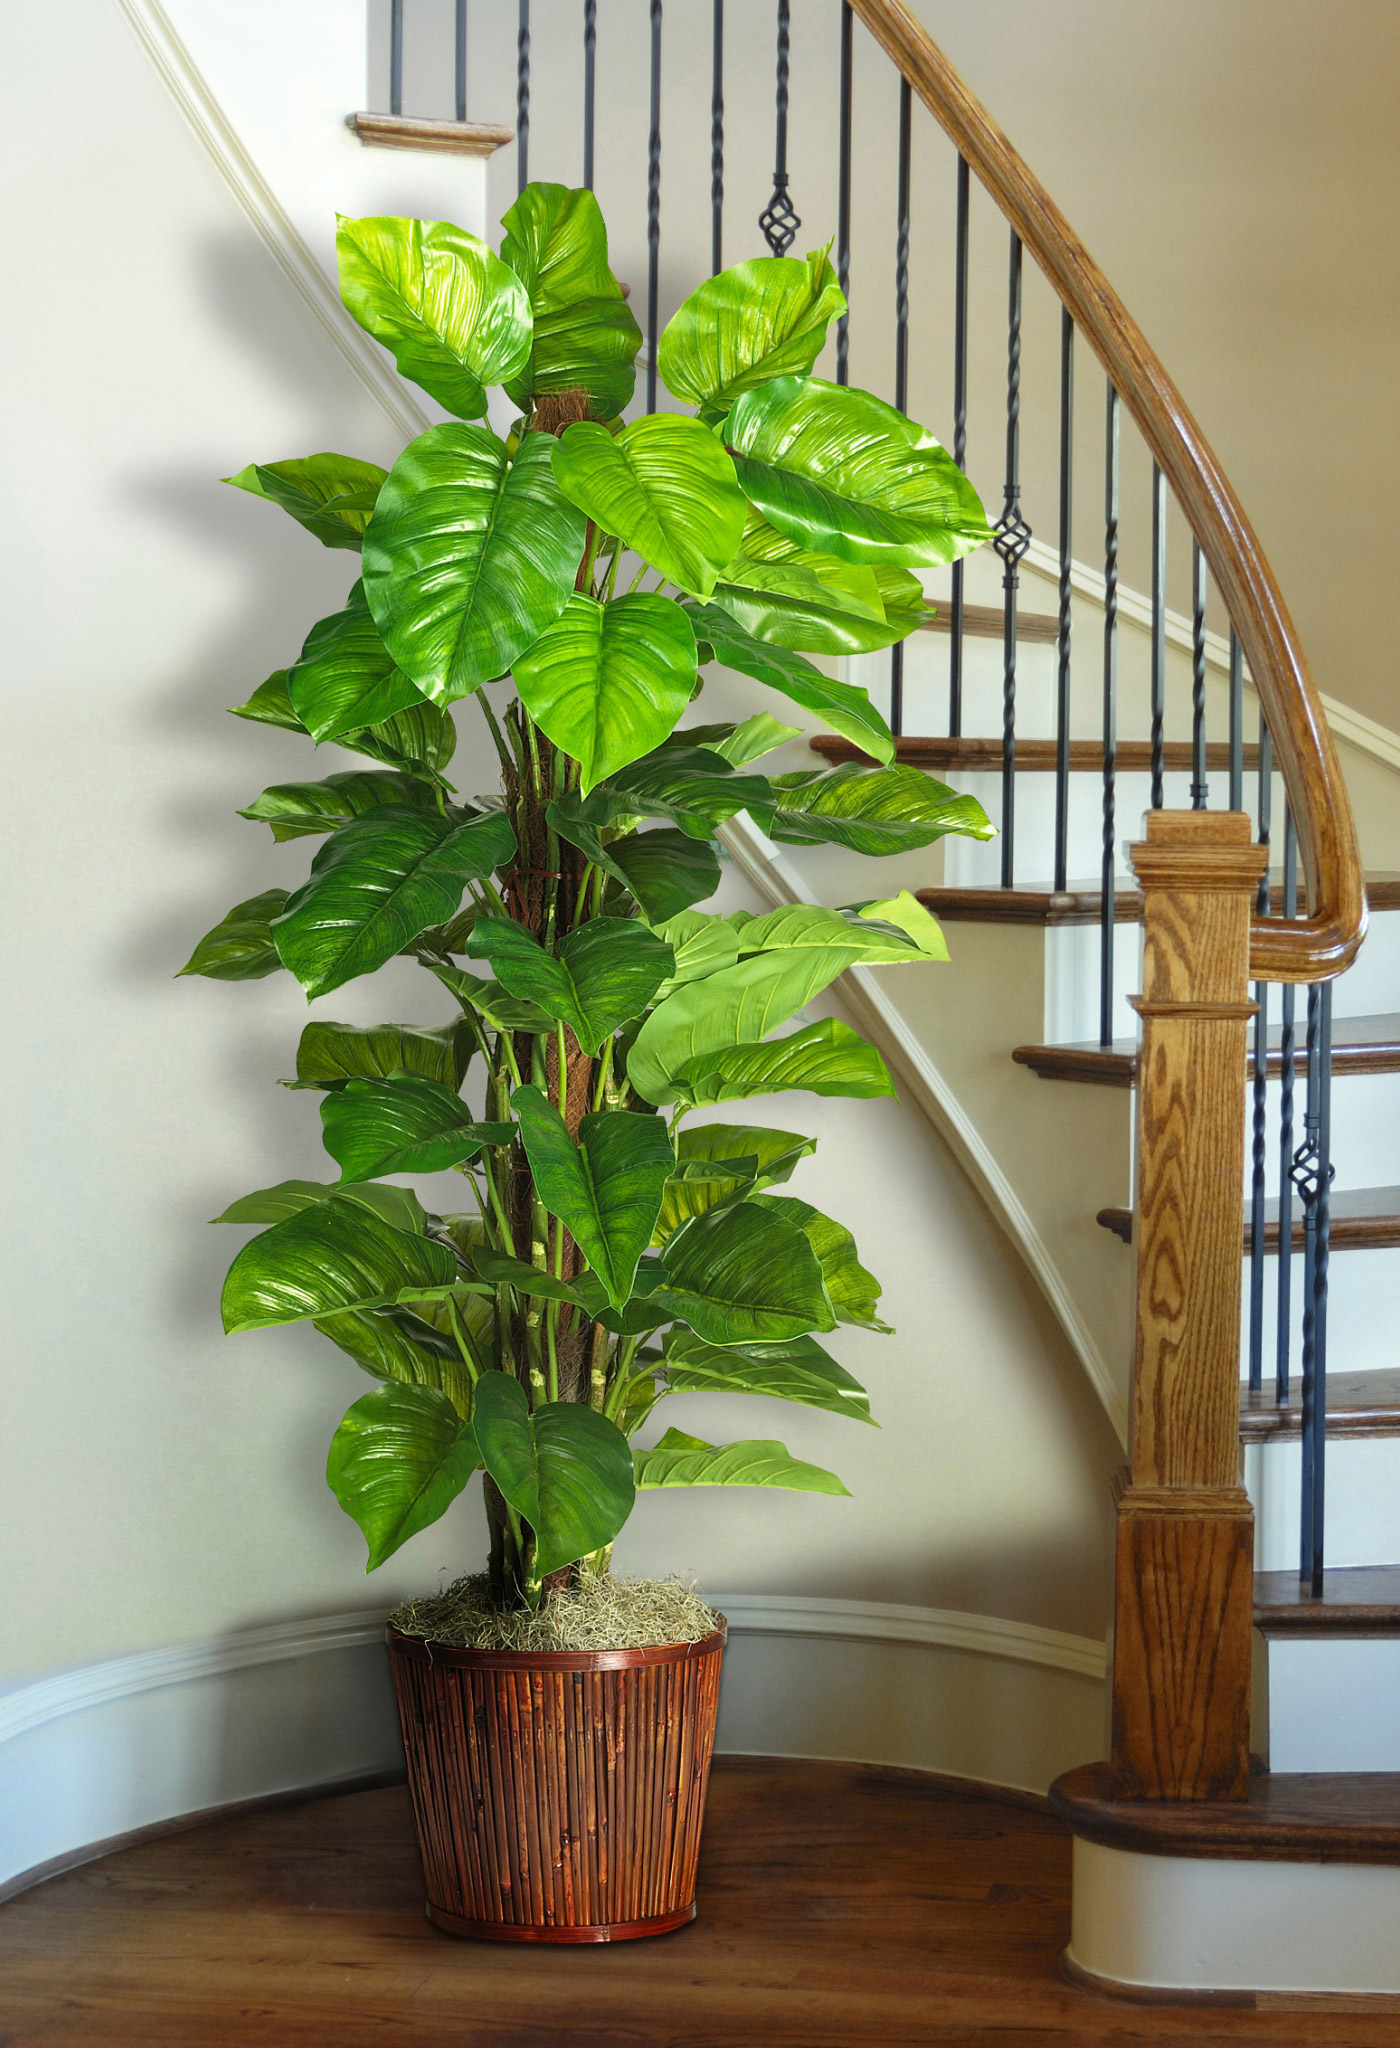 Decorating with artificial plants